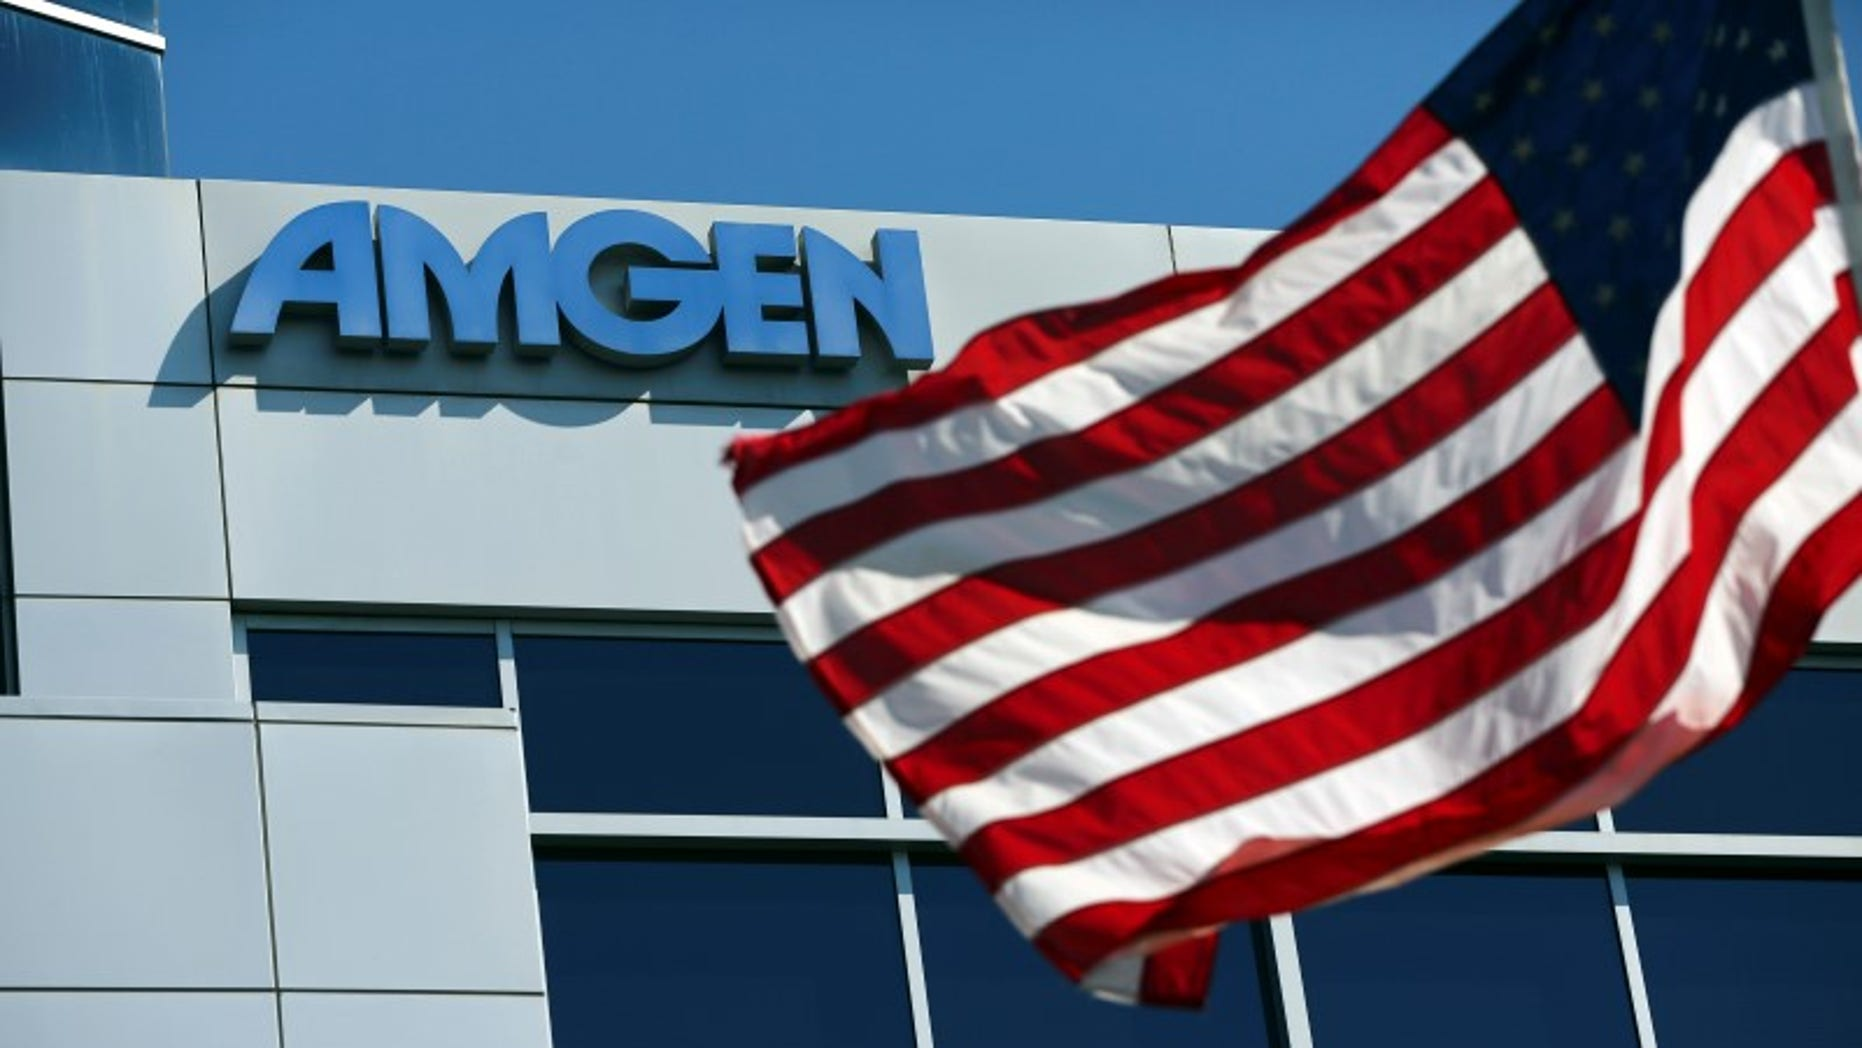 An Amgen sign is seen at the company's office in South San Francisco, California October 21, 2013. REUTERS/Robert Galbraith  (UNITED STATES